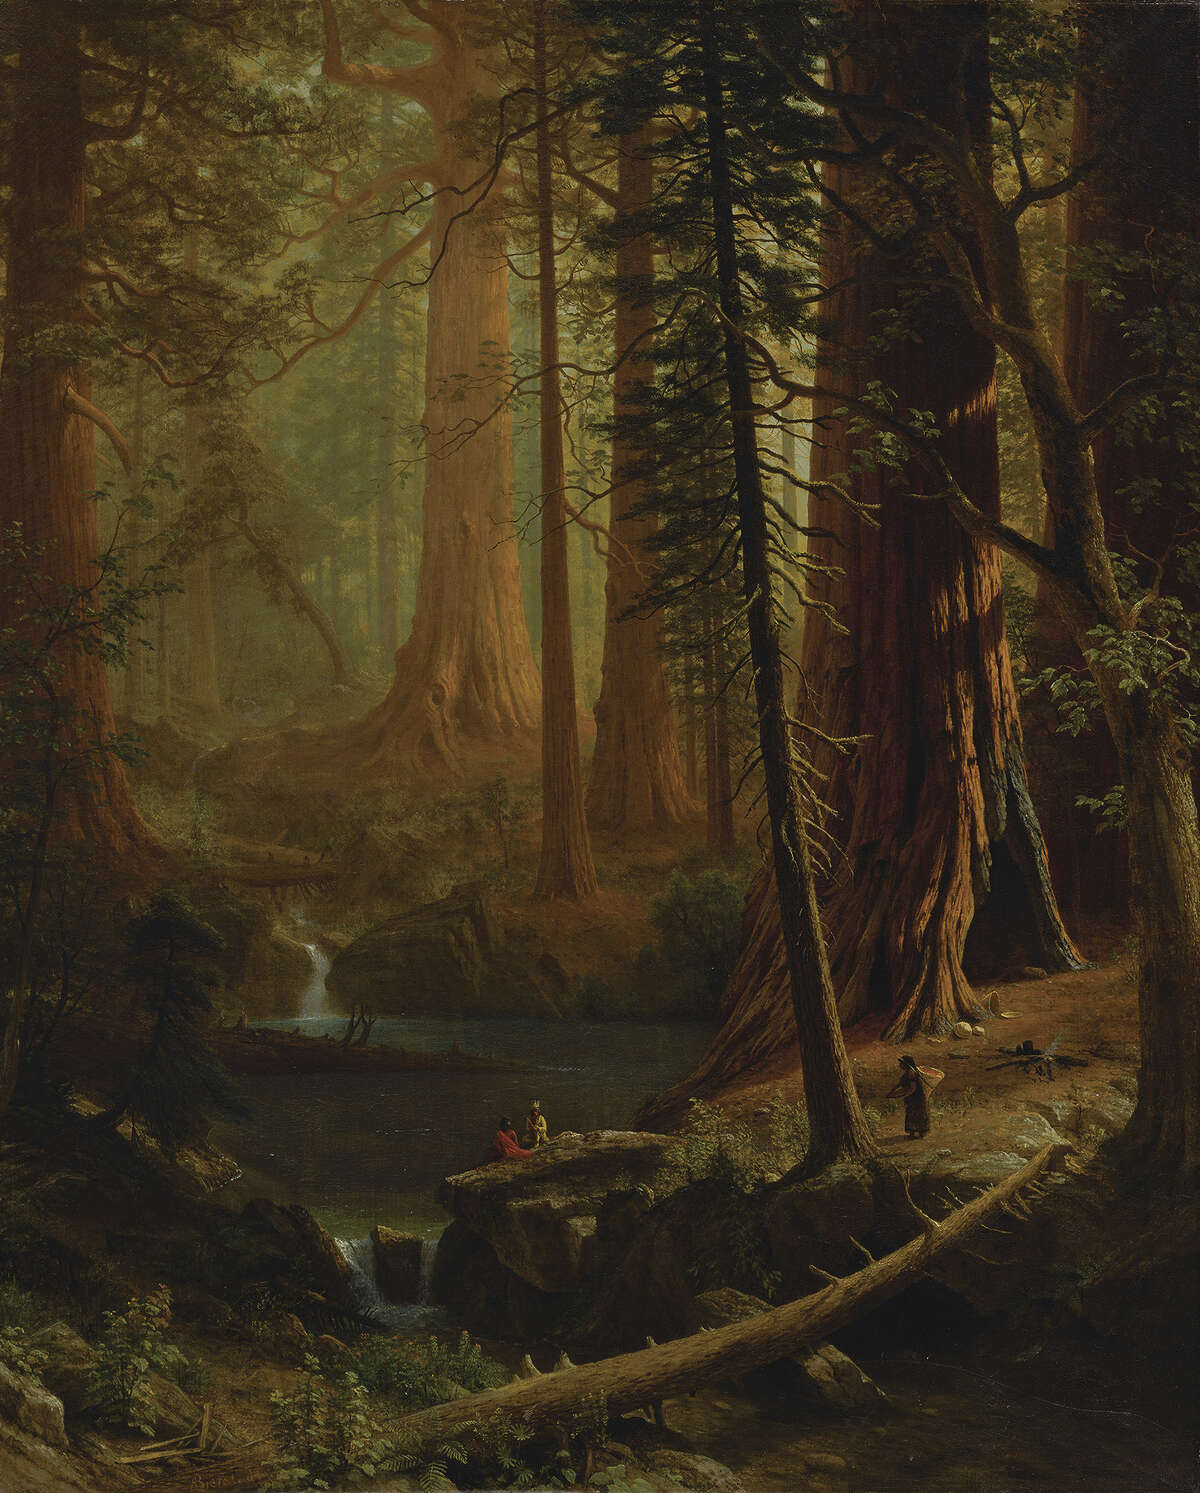 ALBERT BIERSTADT Giant Redwood Trees of California Circa 1874 Oil on canvas Courtesy Berkshire Museum It is one of the 40 works the museum will be auctioning in part to fund a $60 million